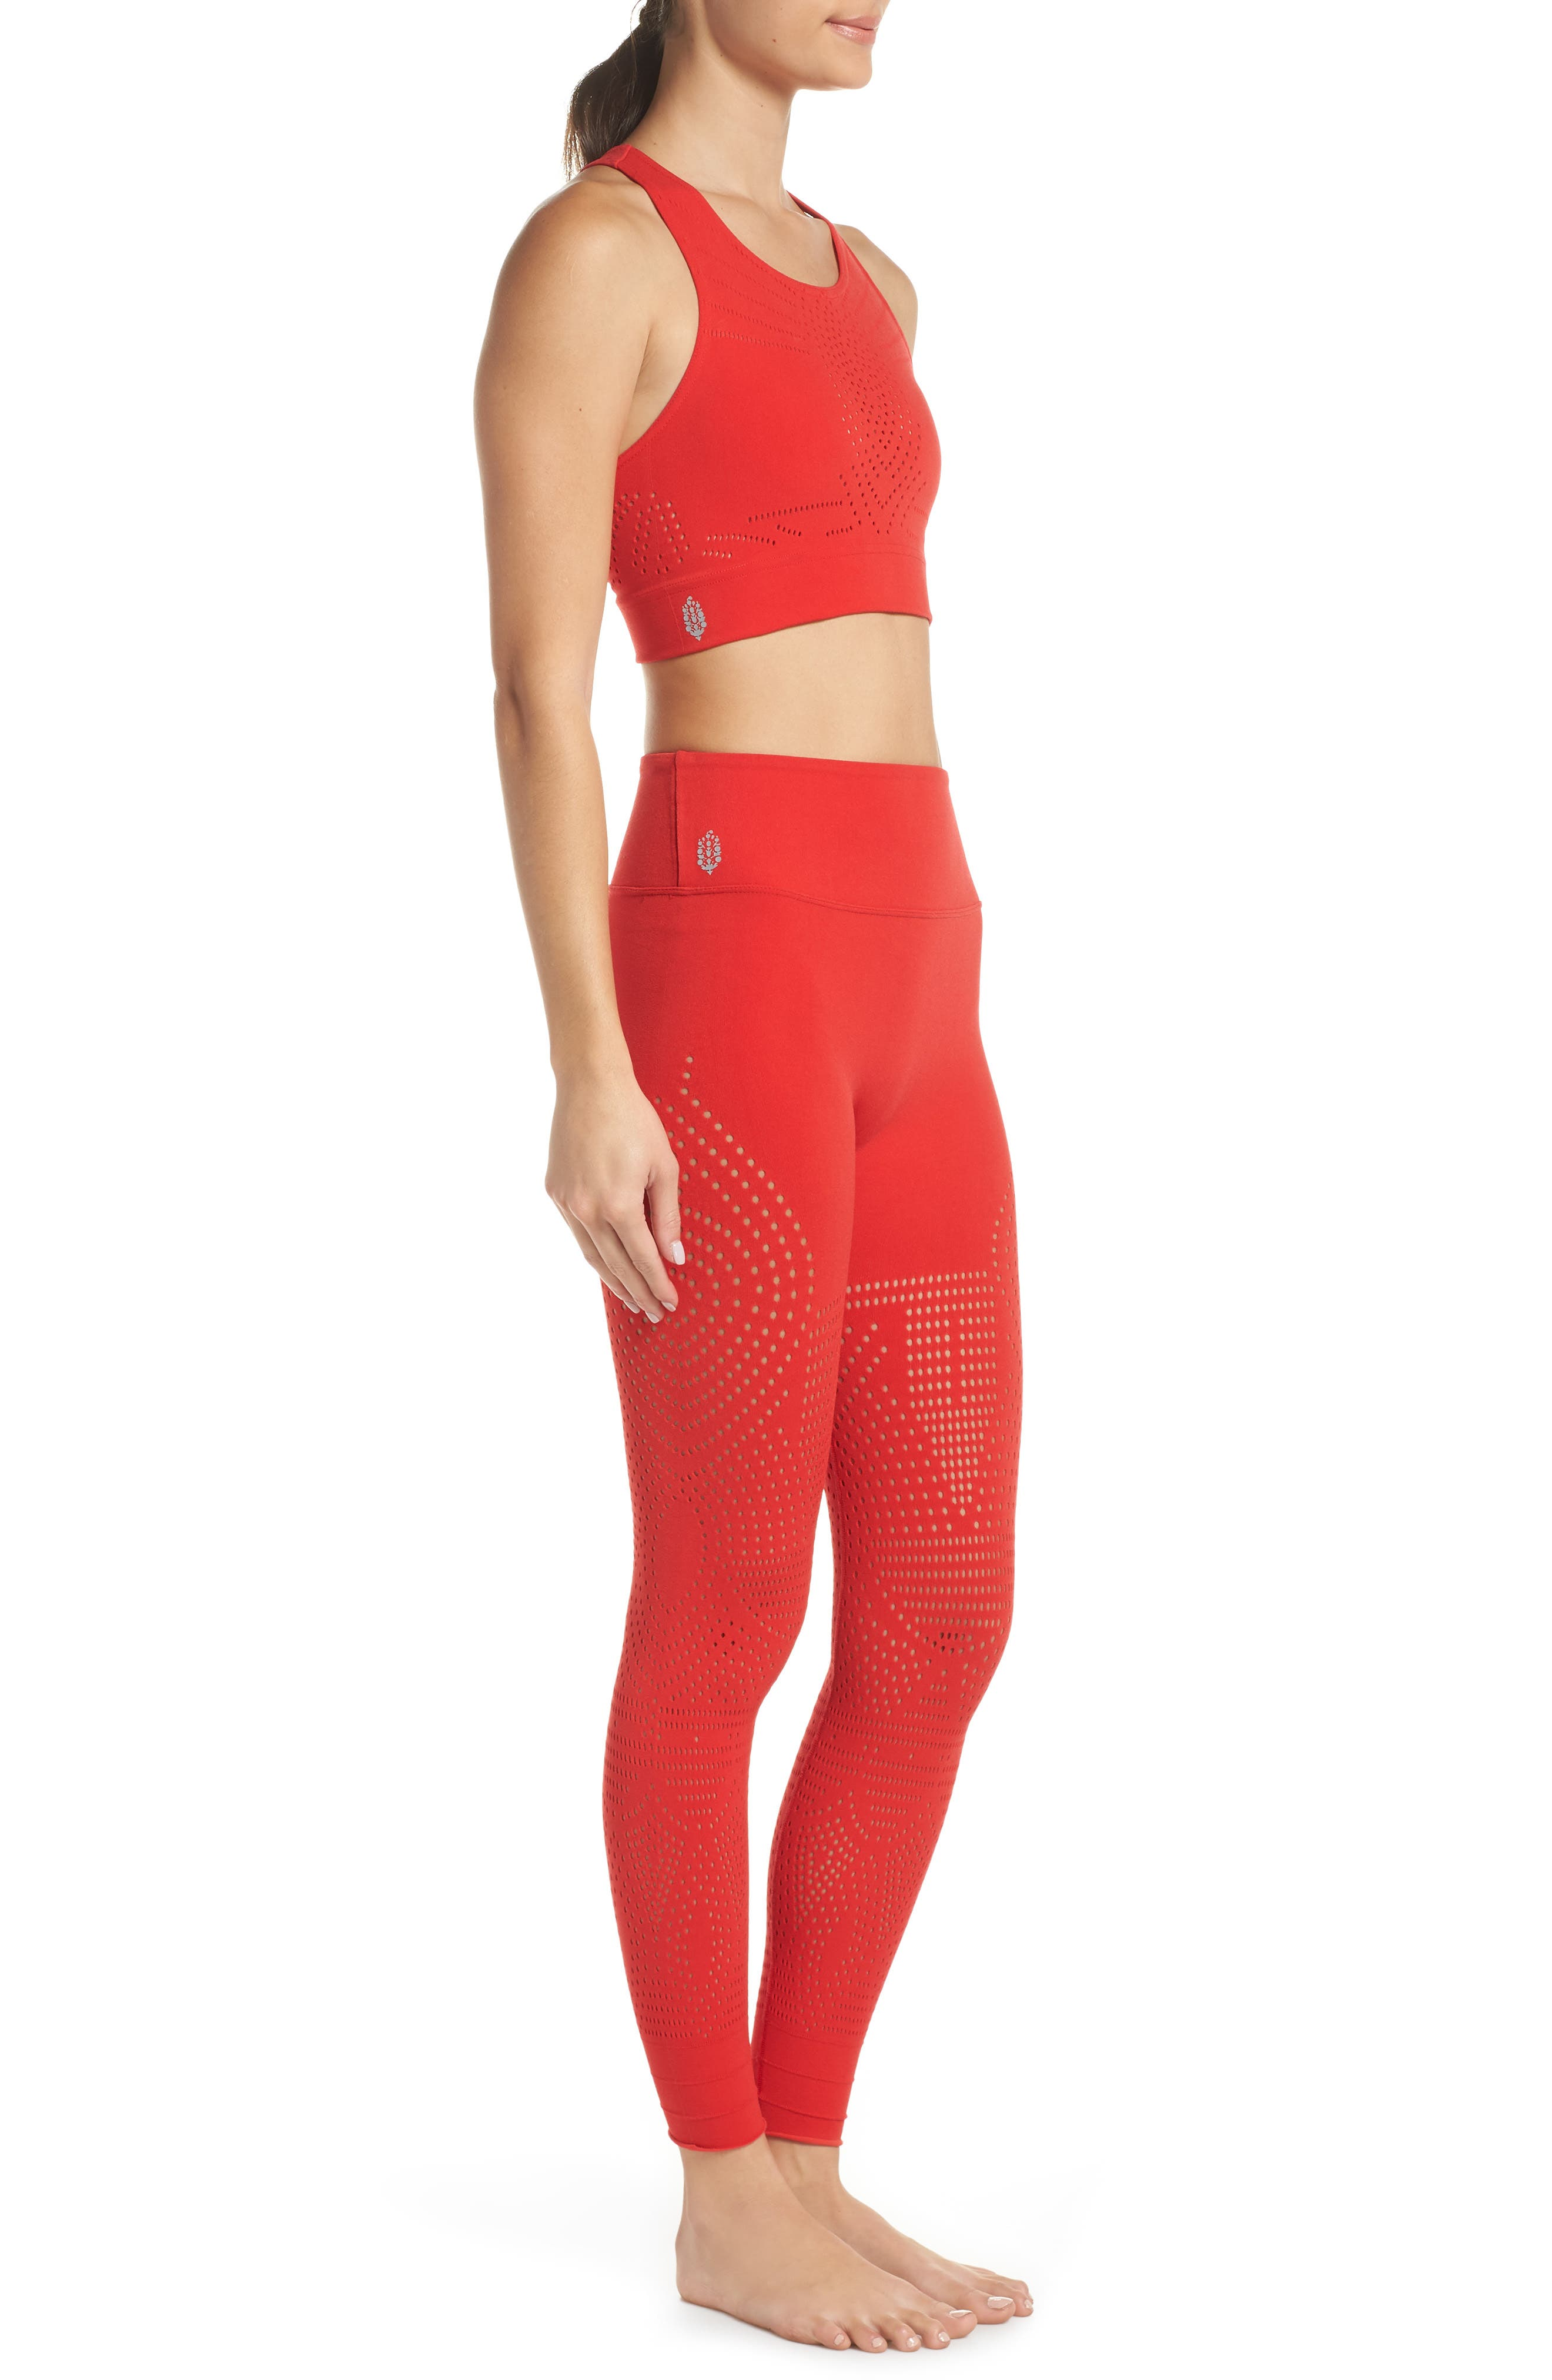 FP Movement Ecology Sports Bra,                             Alternate thumbnail 10, color,                             RED